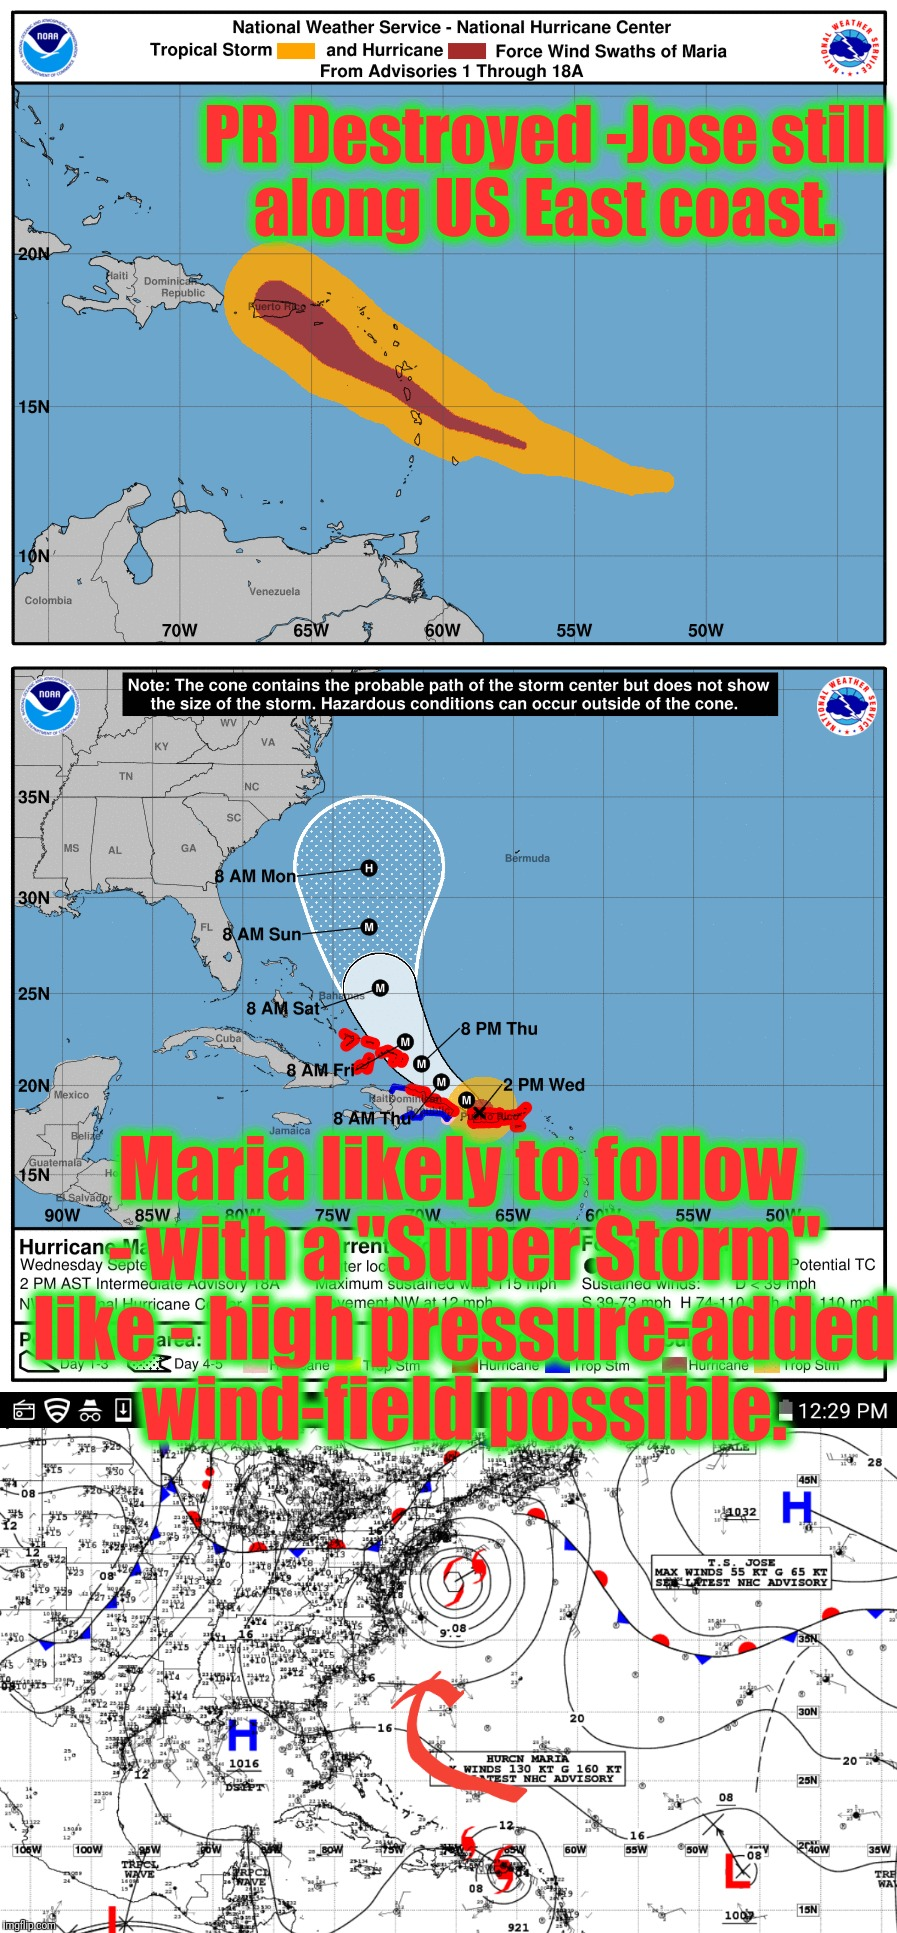 "PR Destroyed -Jose still along US East coast. Maria likely to follow - with a ""Super Storm"" like - high pressure-added wind-field possible. 